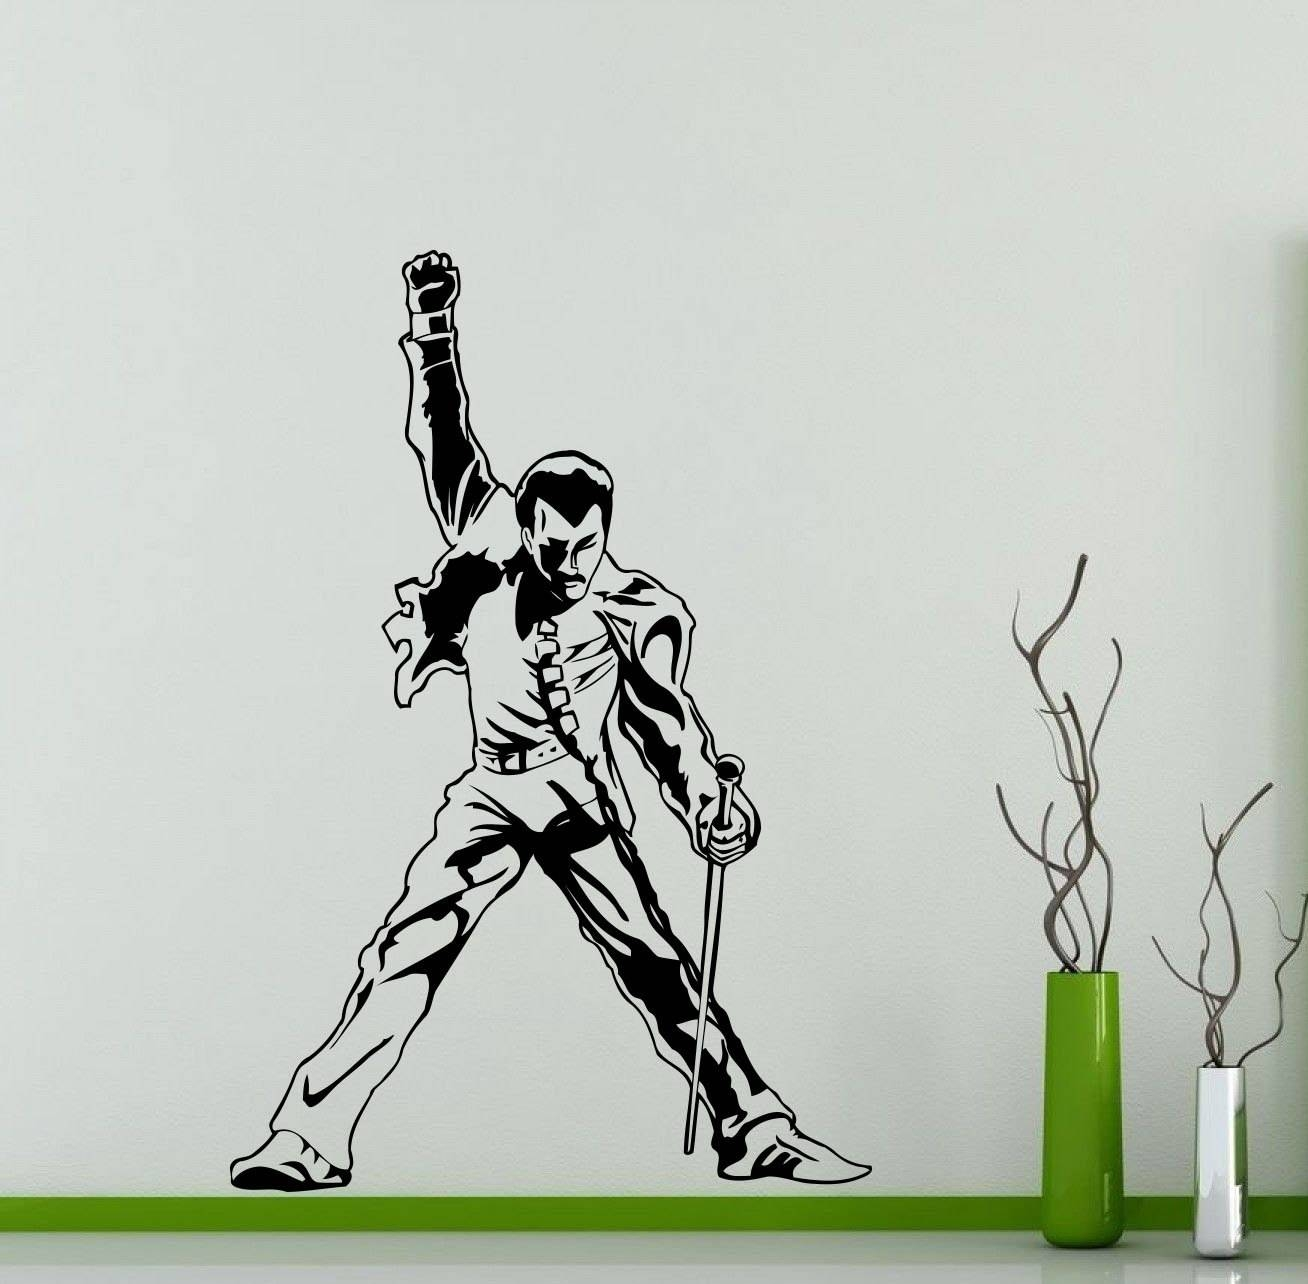 Freddie Mercury Wall Decal Queen Metal Rock Music Band Vinyl Pertaining To Latest Freddie Mercury Wall Art (View 6 of 15)